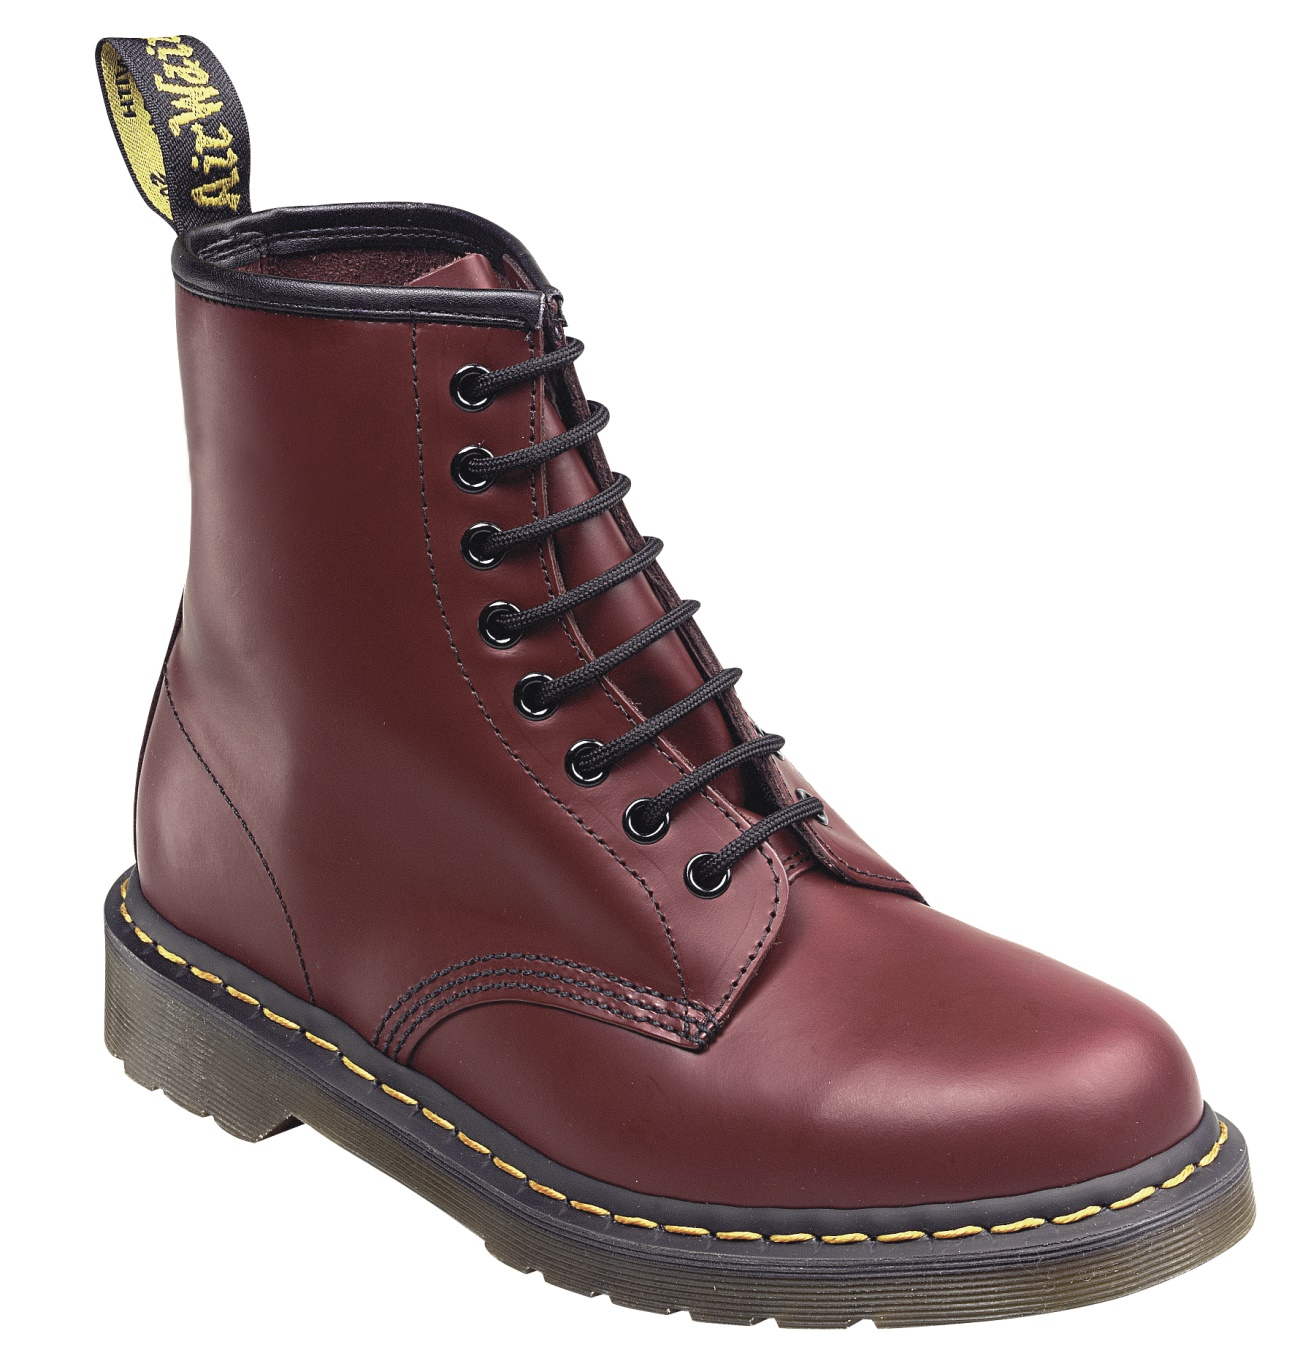 Dr. Martens 8 Loch Stiefel ohne Stahlkappe CR1460z Dr. Martens bei Army Shop armydepot